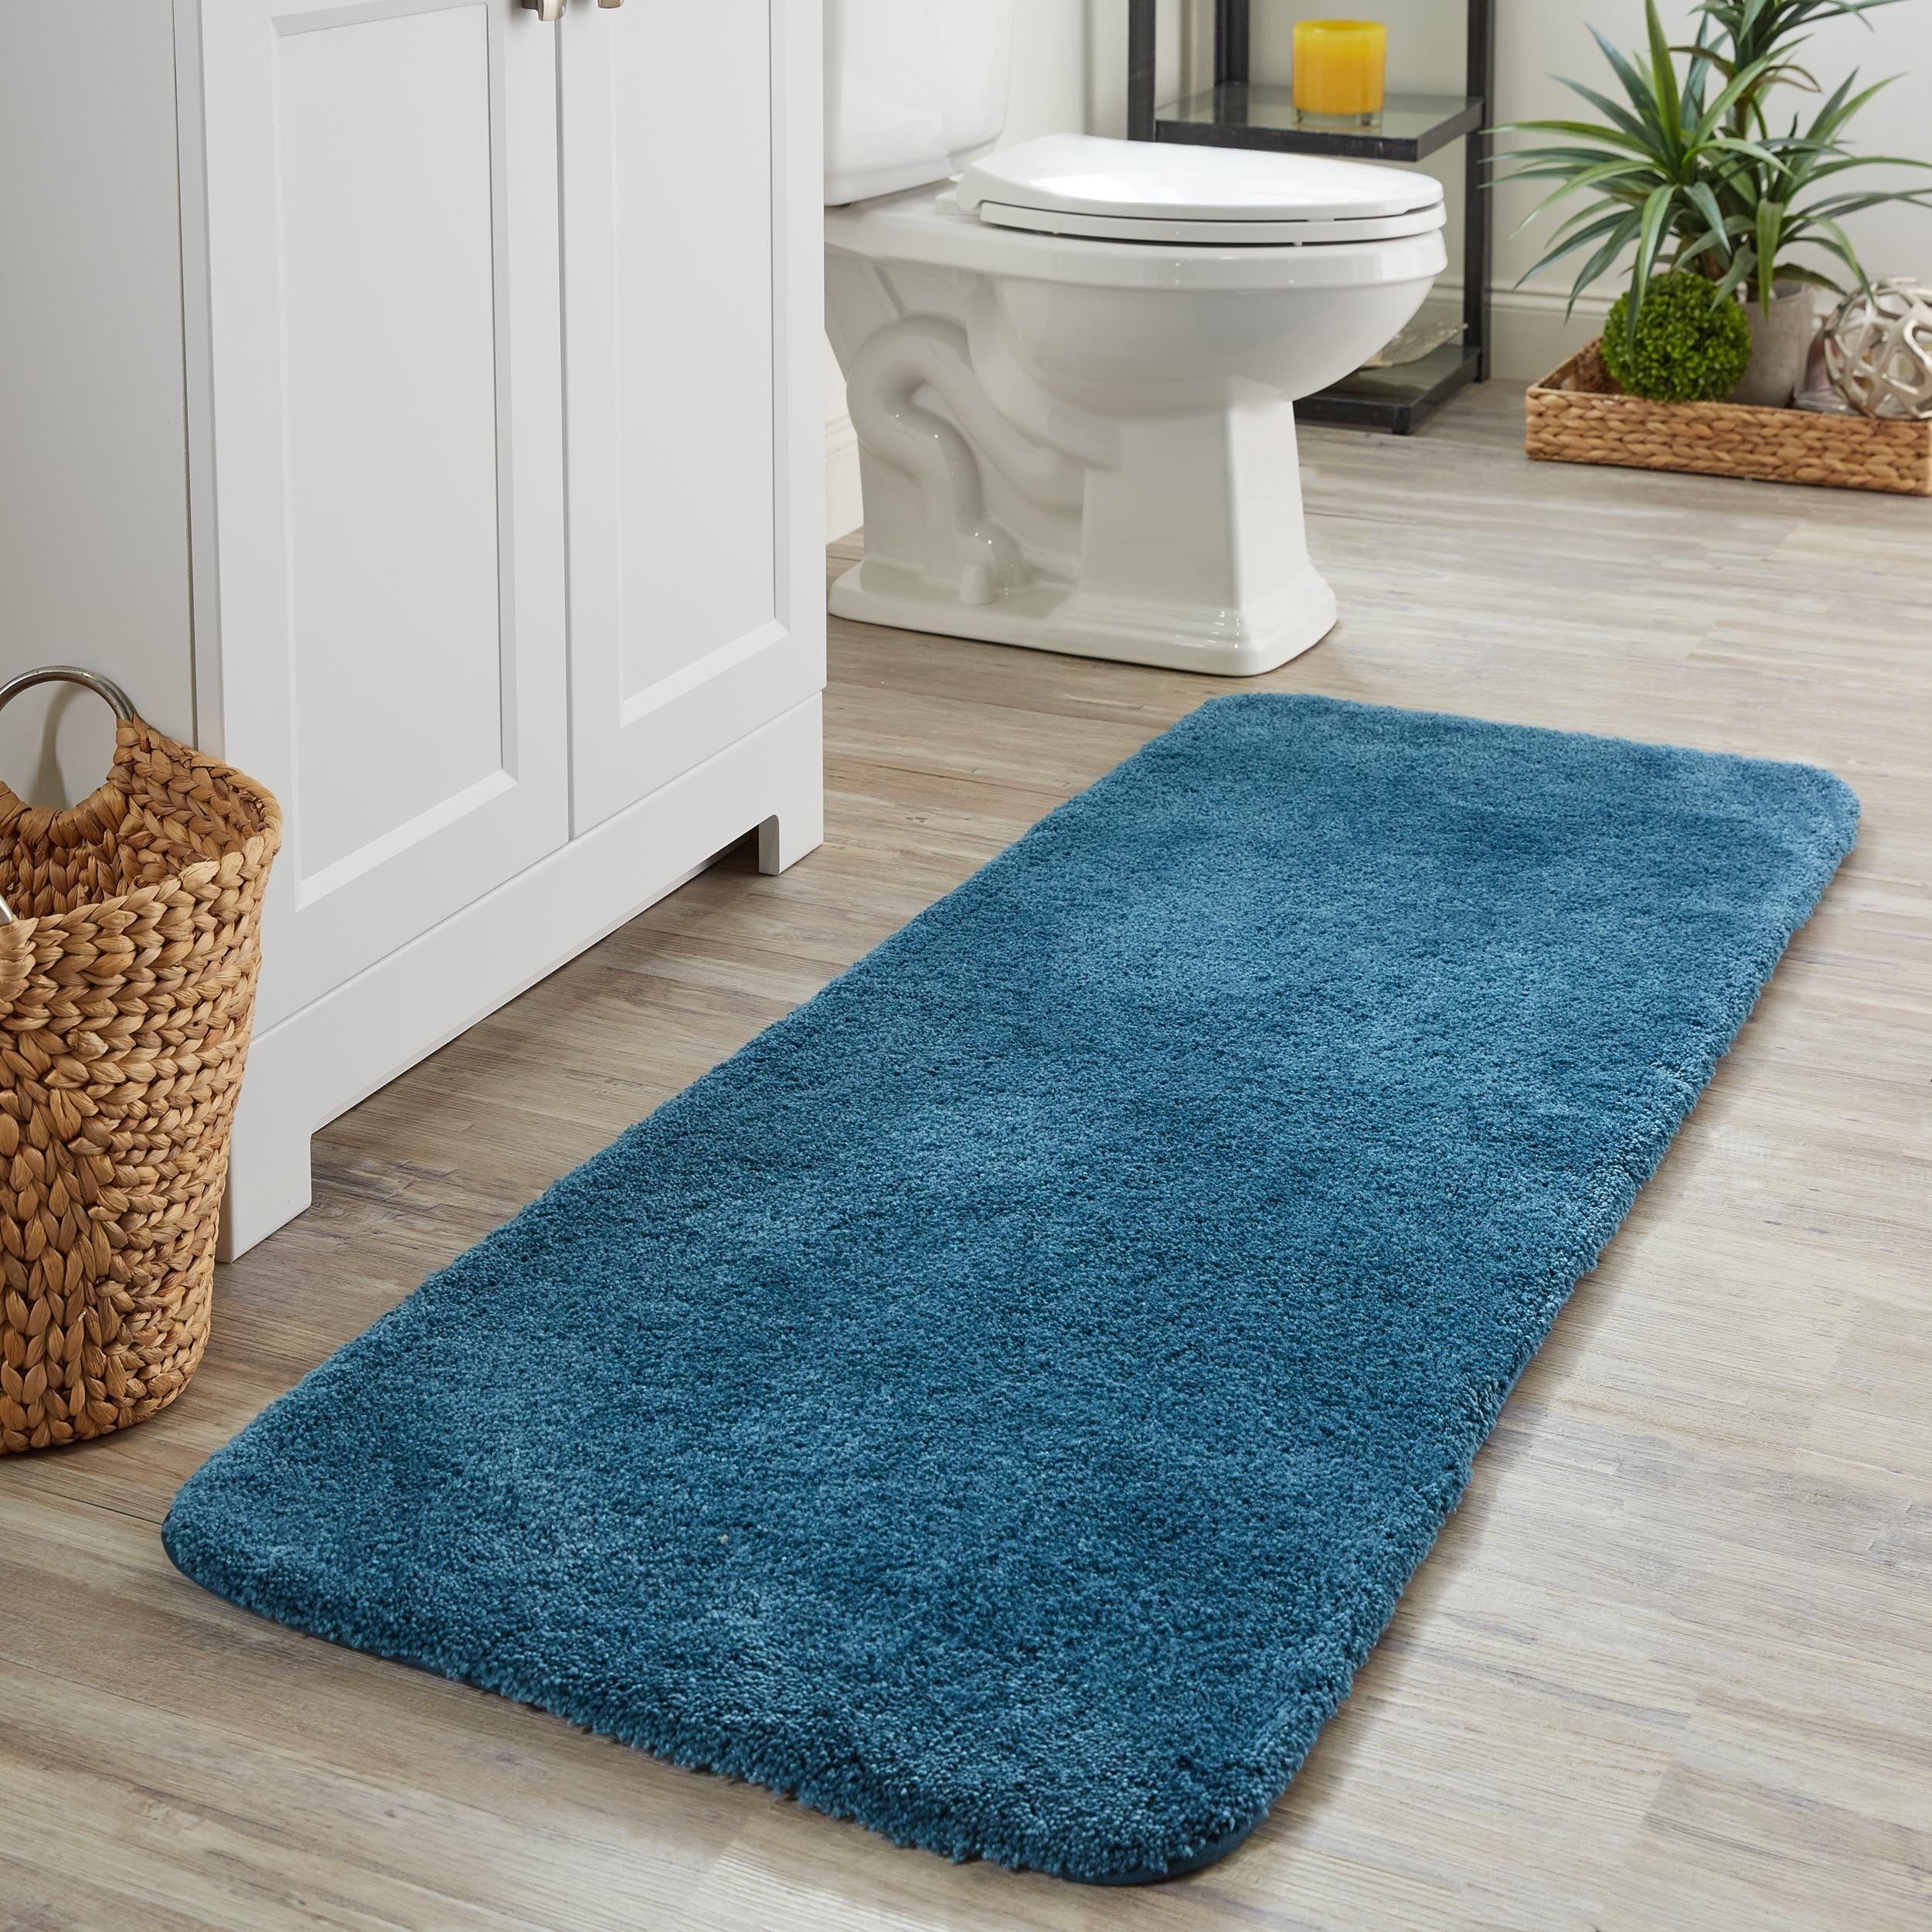 designs nursery brown bath comfort light top shaggy mat rugs fish gy with washable traditional foam shag bathroom long supreme buy colorful skin rug set olefin coloured beautiful sale bright memory chinese mohawk